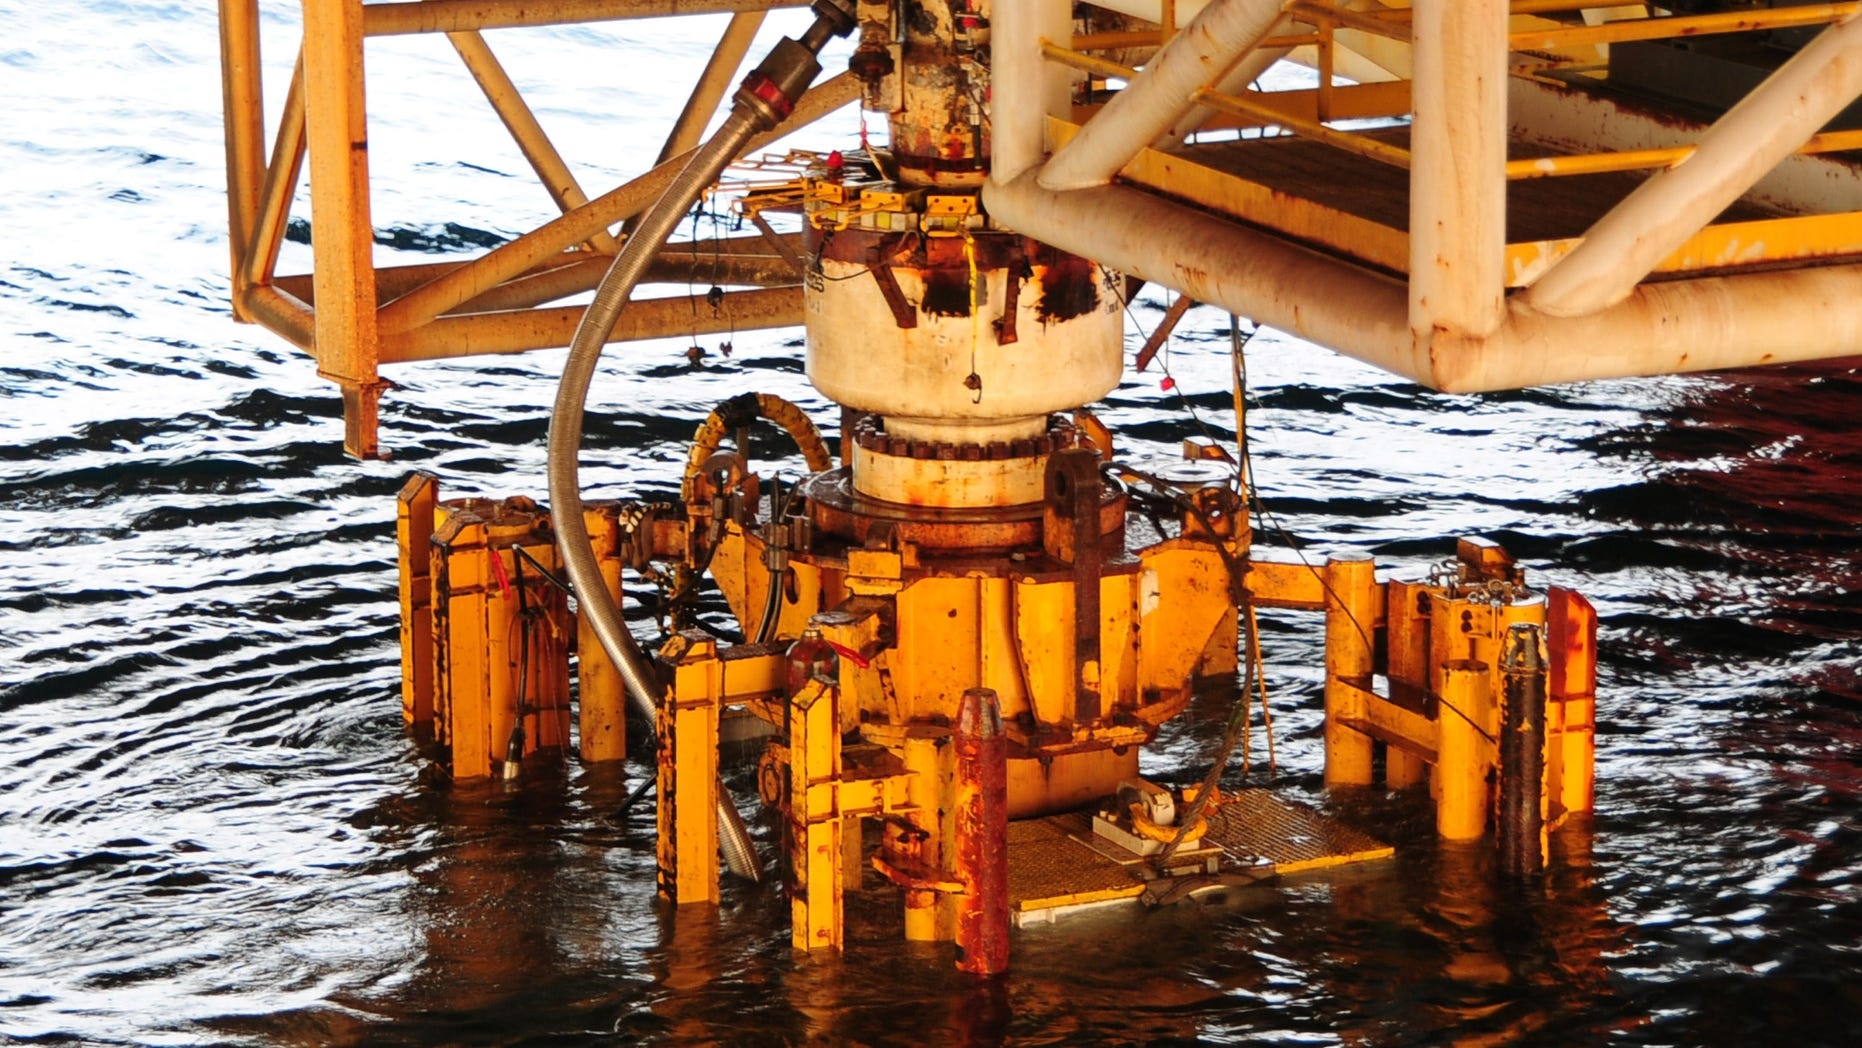 GULF OF MEXICO - SEPTEMBER 4: (EDITORS NOTE: Image has been released by U.S. Military prior to transmission.)  In this handout image provided by the U.S. Coast Guard, the damaged blow out preventer along with the Lower Marine Riser Package (LMRP) cap from the Deepwater Horizon oil rig that caused the massive oil spill is extracted and put aboard the vessel Q4000 on September 4, 2010 in the Gulf of Mexico.  The 50-foot, 300-ton preventer was removed and replaced on the well head by a newly tested preventer and will be taken for evidence to a NASA facility in Louisiana in the ongoing investigation with the Deepwater Horizon Criminal Investigation Team and FBI Evidence Recovery Team.  (Photo by Petty Officer 1st Class Thomas M. Blue/U.S. Coast Guard via Getty Images)